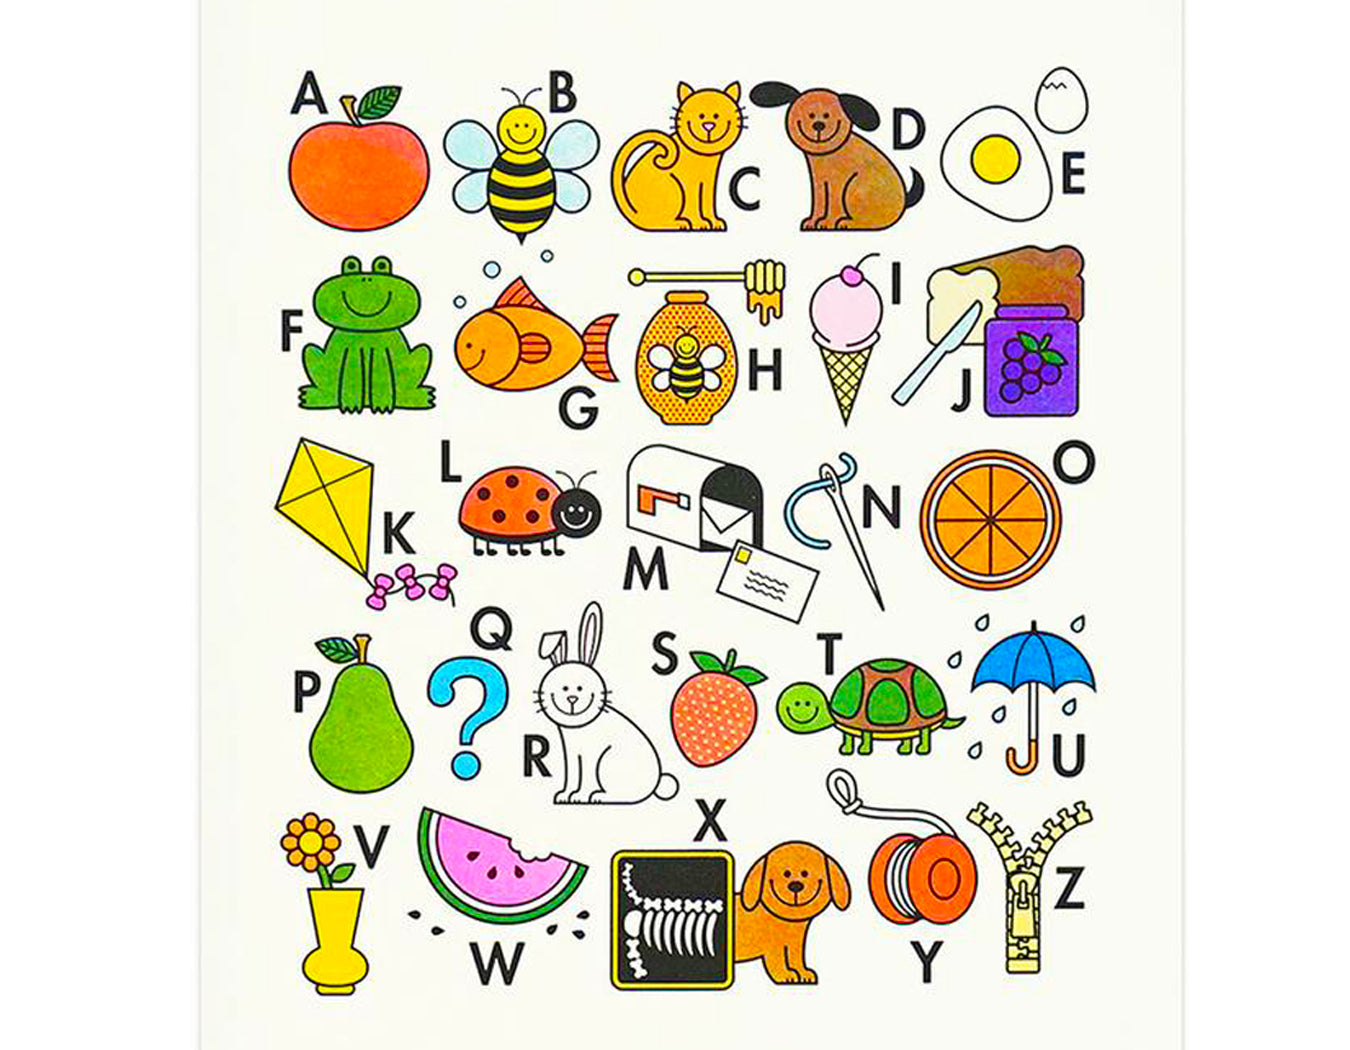 SWEET ILLUSTRATIONS TO COORDINATE WITH THE ALPHABET. APPLE BEE CAT DOG EGG FROG FISH HONEY ICE CREAM JAM KITE LADYBUG MAIL AND MAILBOX NEEDLE ORANGE PEAR QUESTION MARK RABBIT STRAWBERRY TURTLE UMBRELLA VASE WATERMELON XRAY YO YO AND ZIPPER